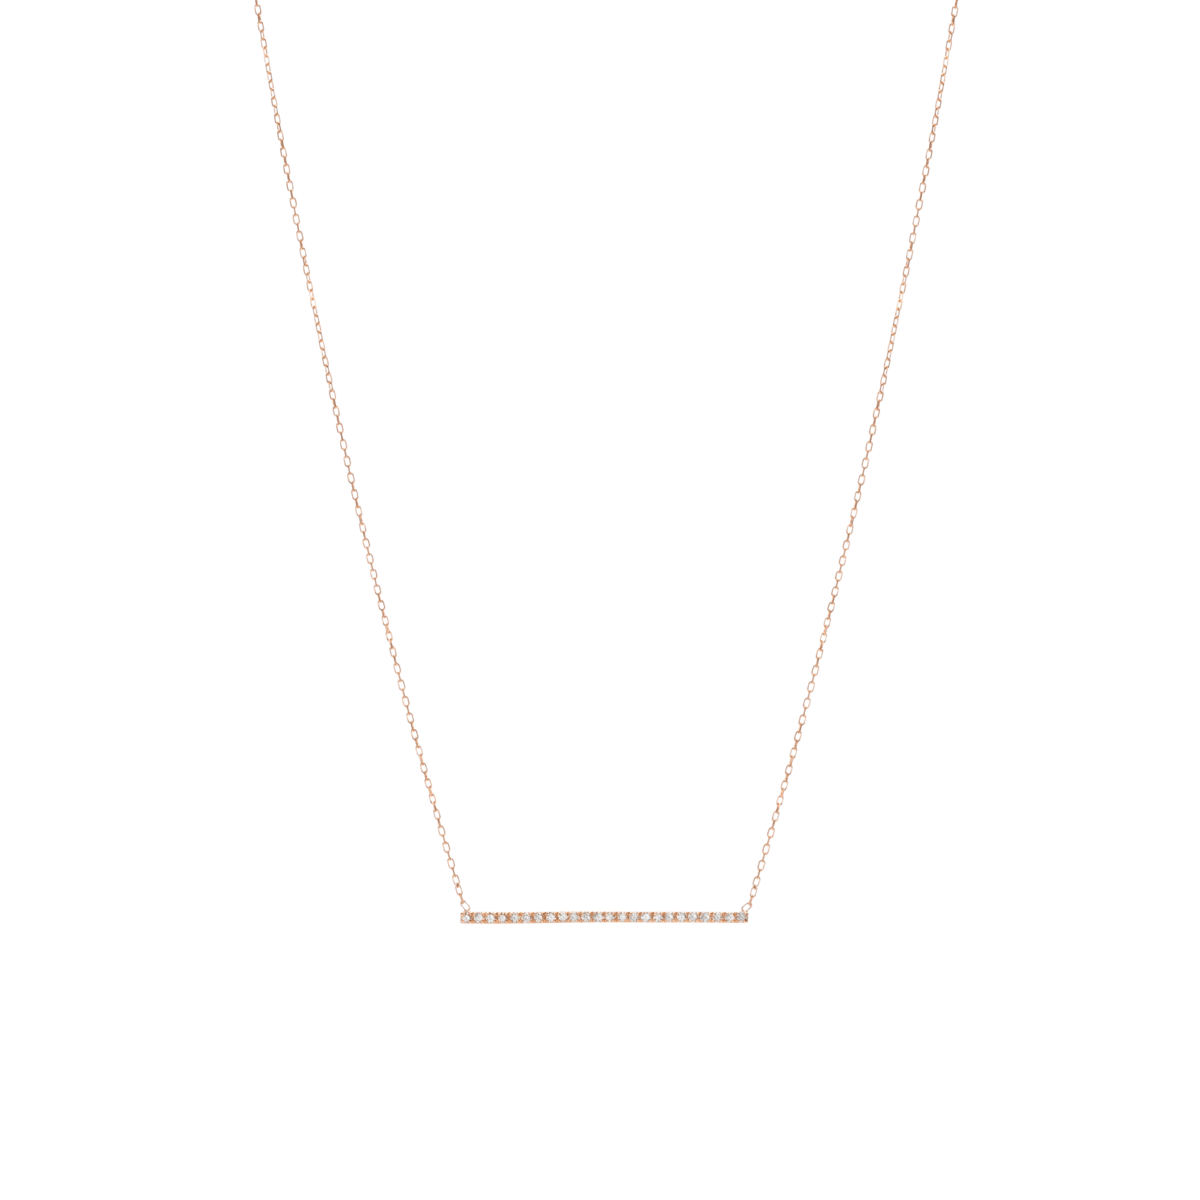 diamond bar png